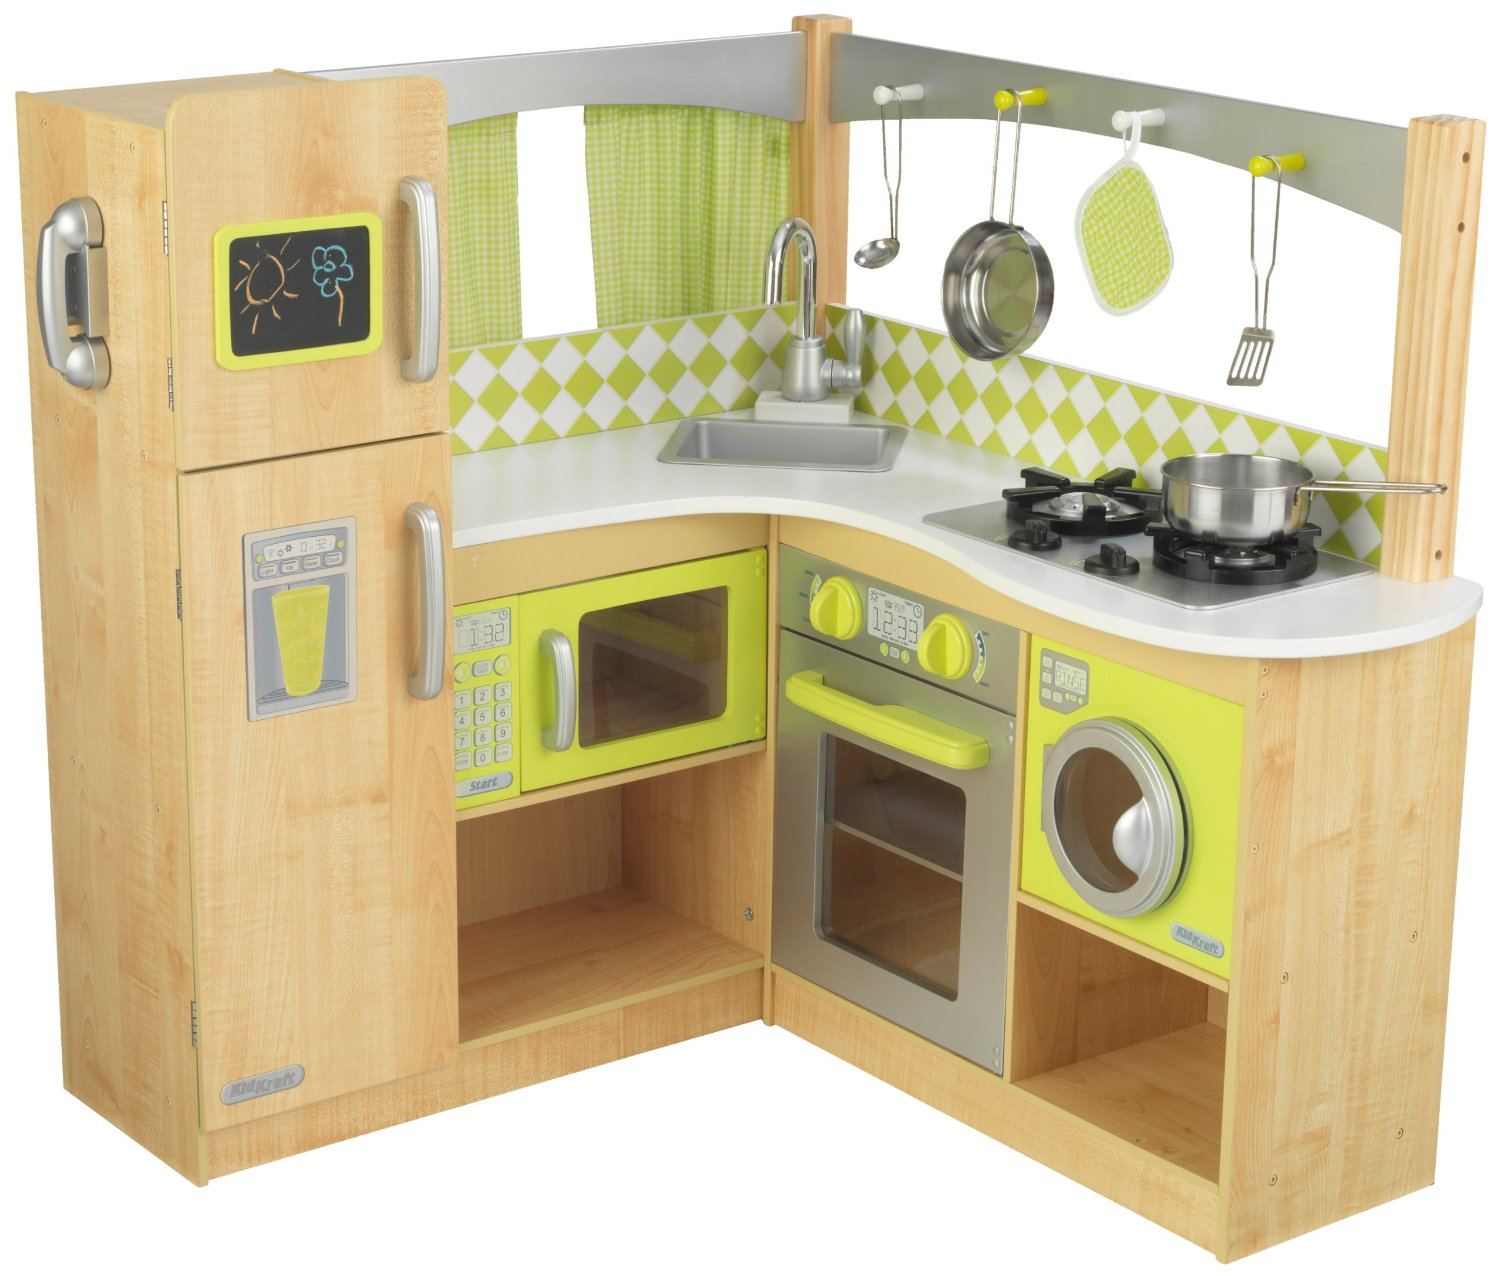 Gift ideas for a pretend play home amy 39 s wandering for Play kitchen designs